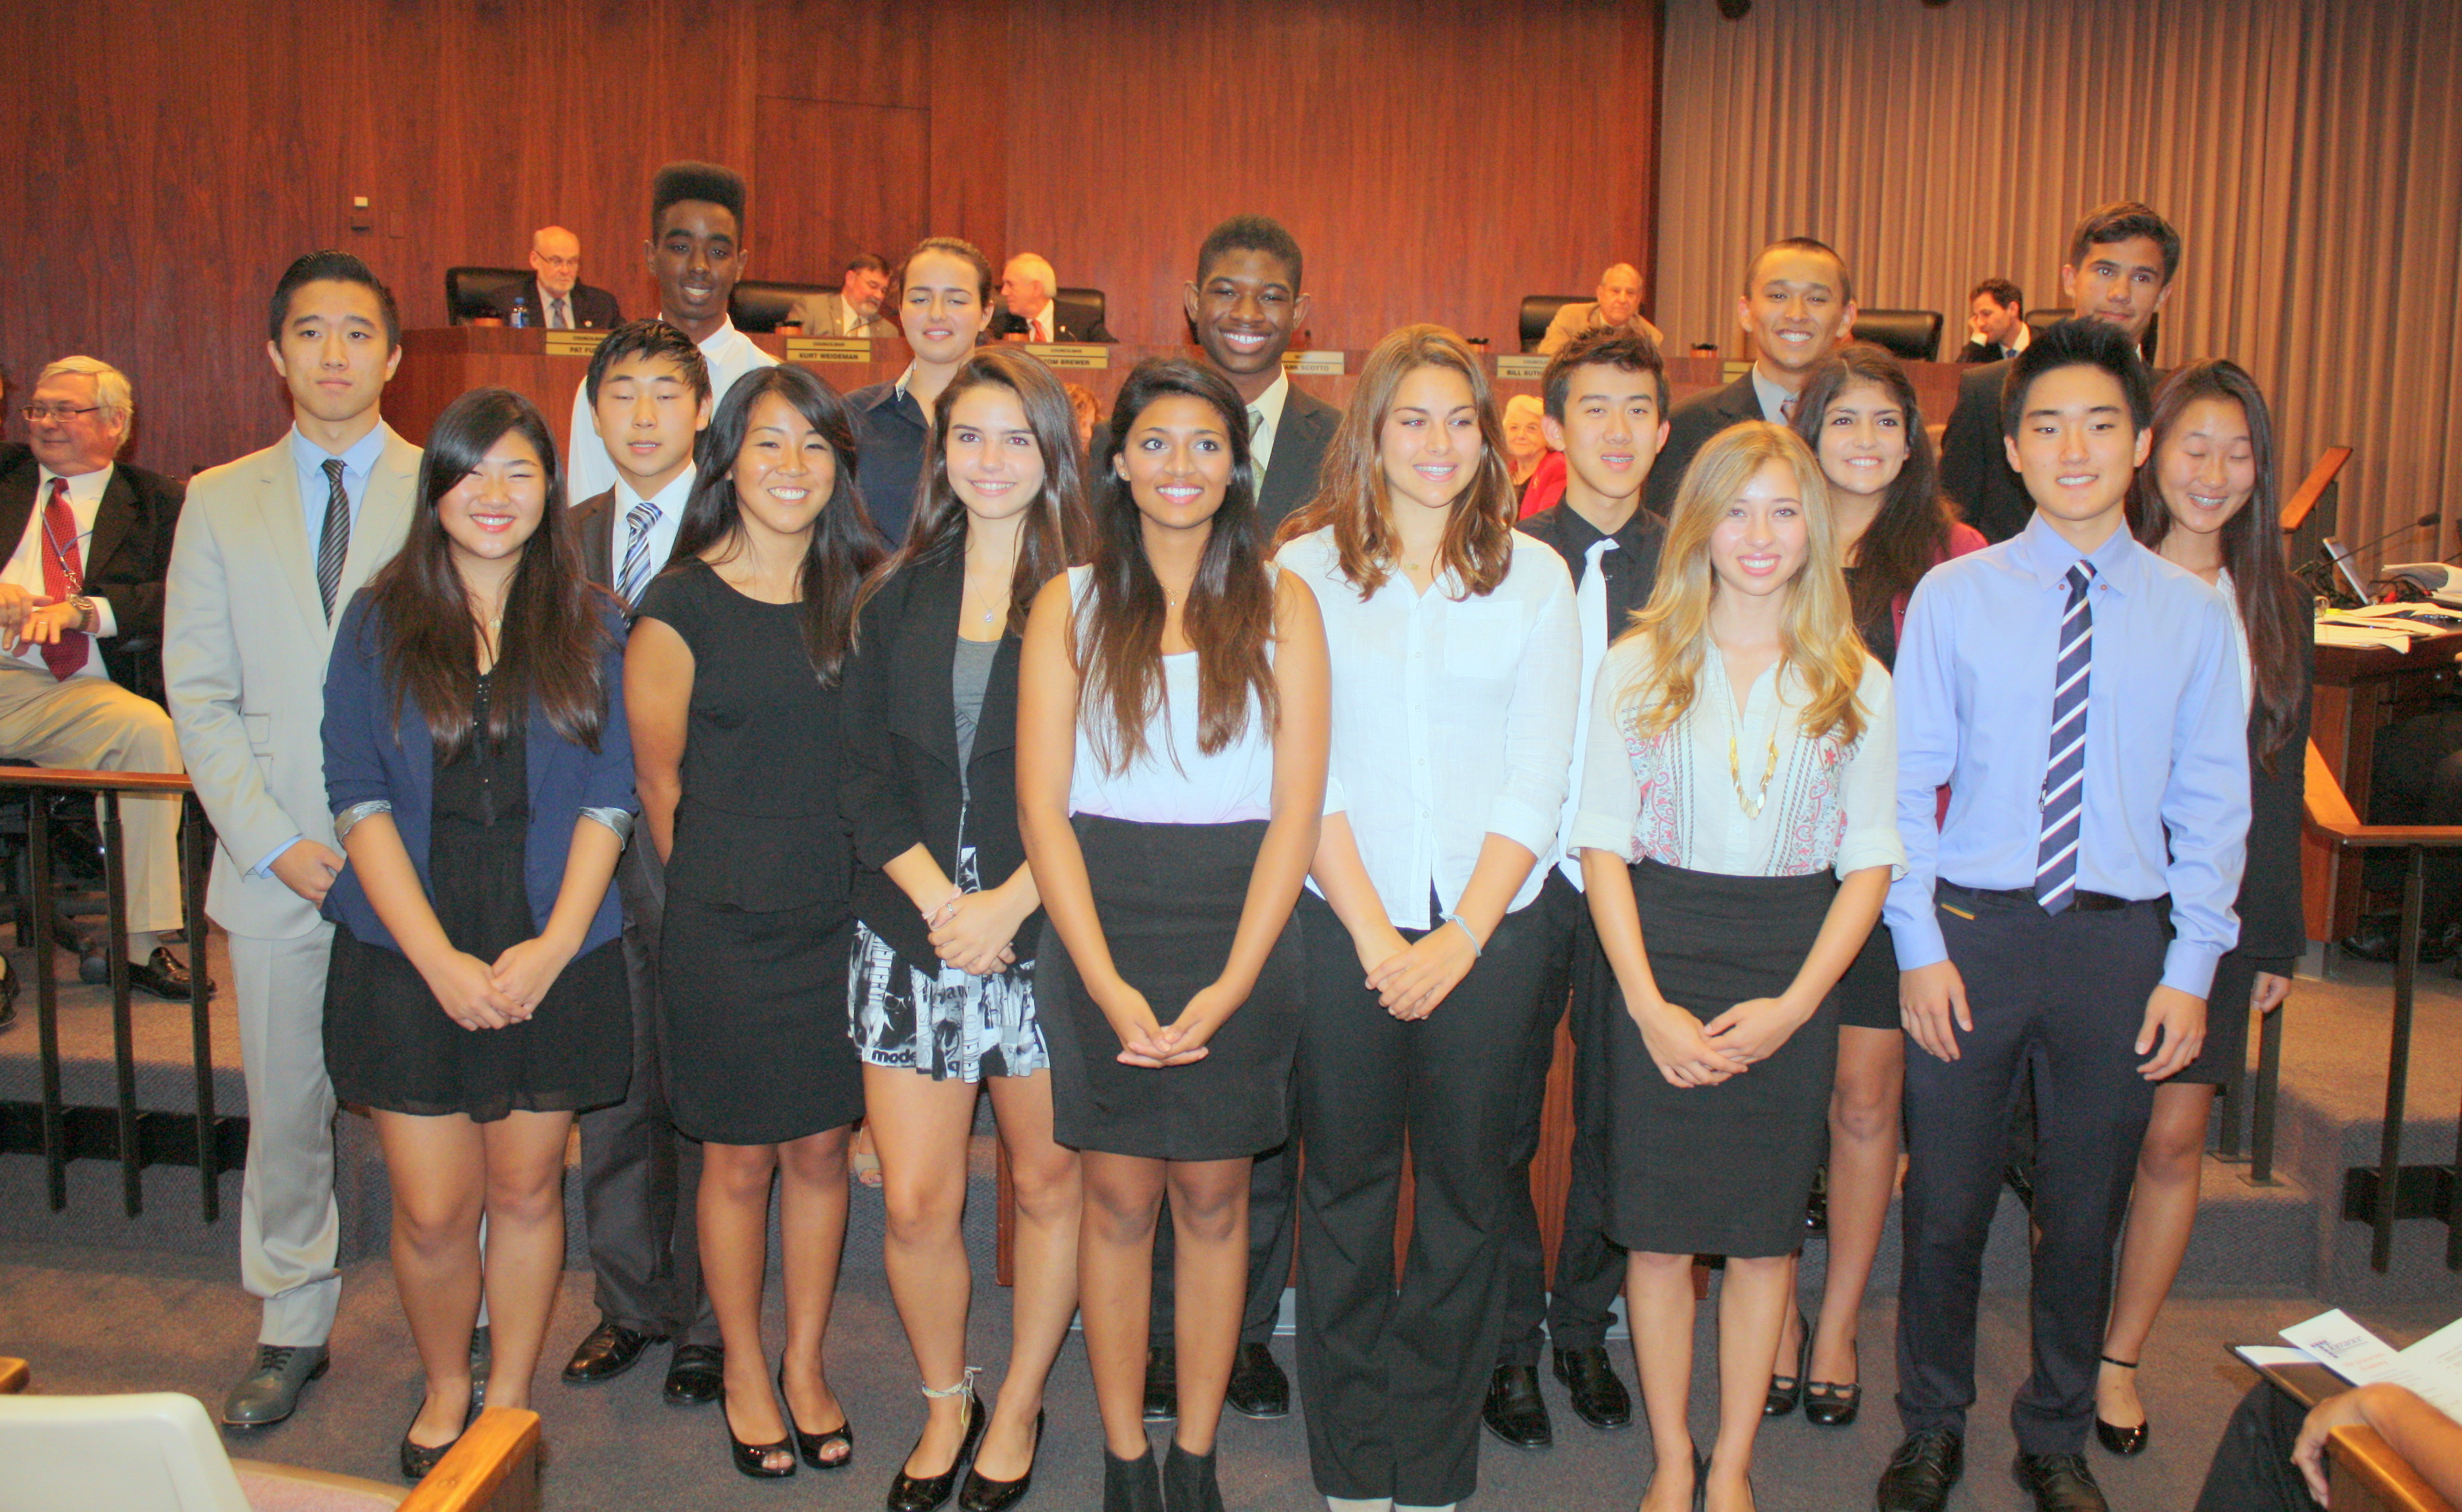 The Torrance Youth Council is an advisory body to the City Council on matters pertaining to youth in Torrance.